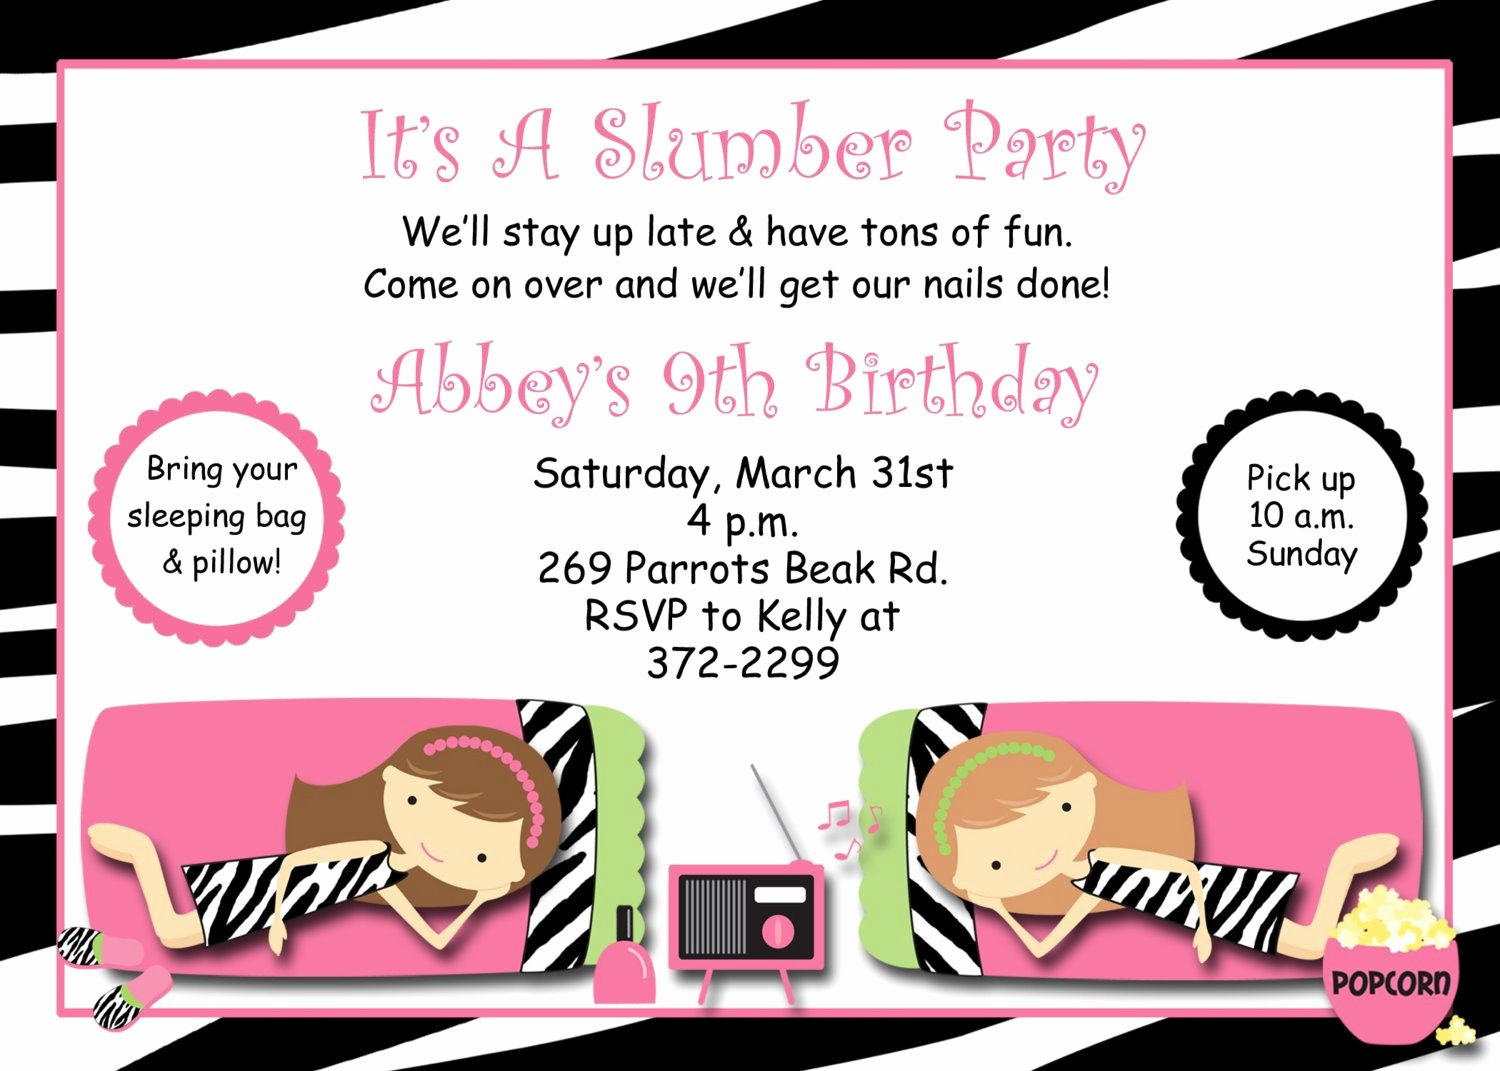 Free Printable Party Invitations Templates Fresh Free Printable Slumber Party Invitations Templates